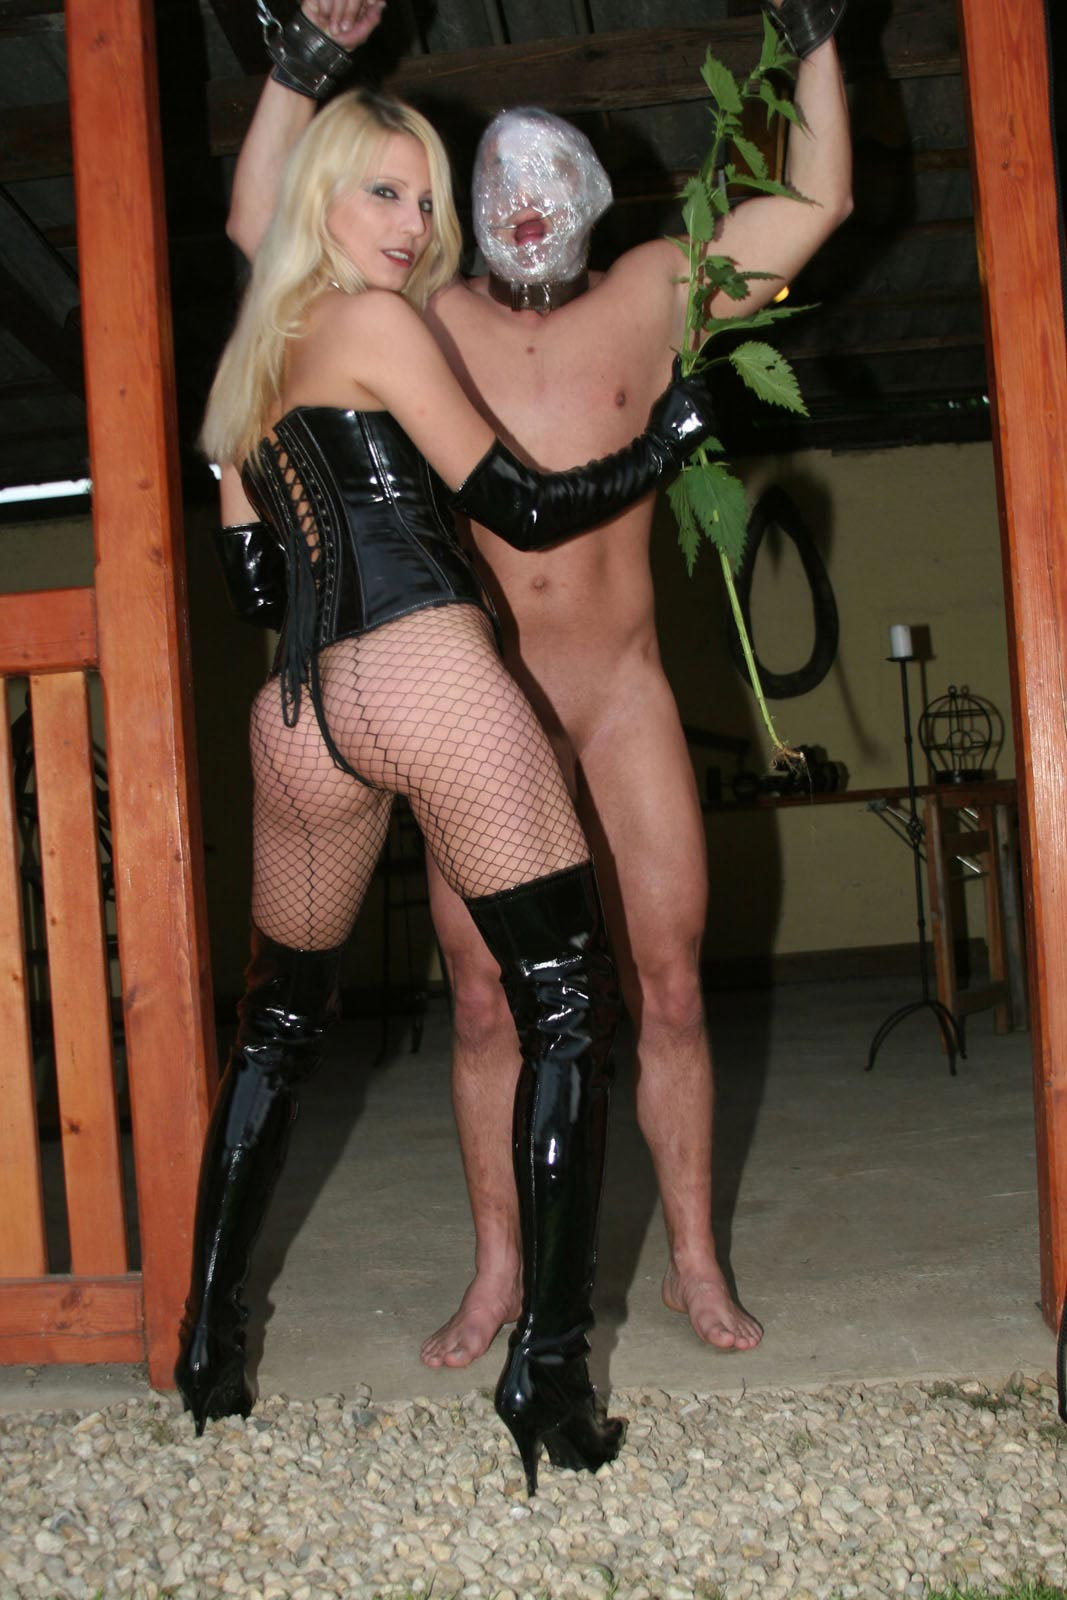 Hot blond naked dominatrix guide - Lady bound slave's head with plastic and whipping his exposed ...